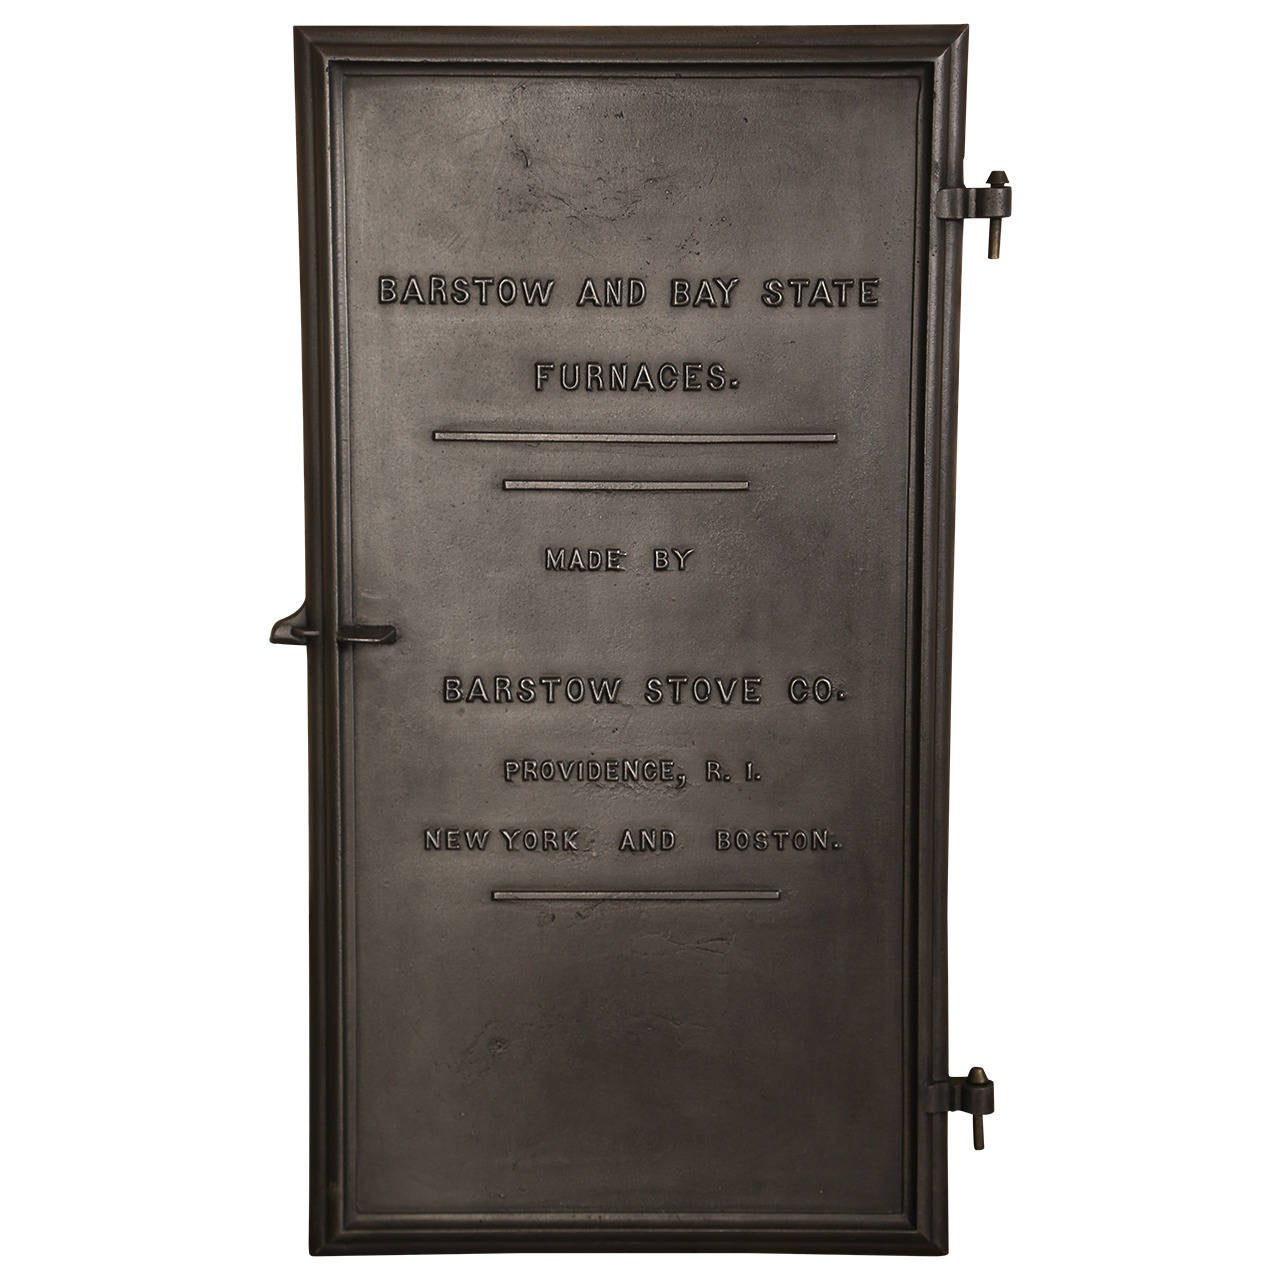 Vintage Industrial Doors For Sale : Vintage industrial barstow and bay state furnace door at